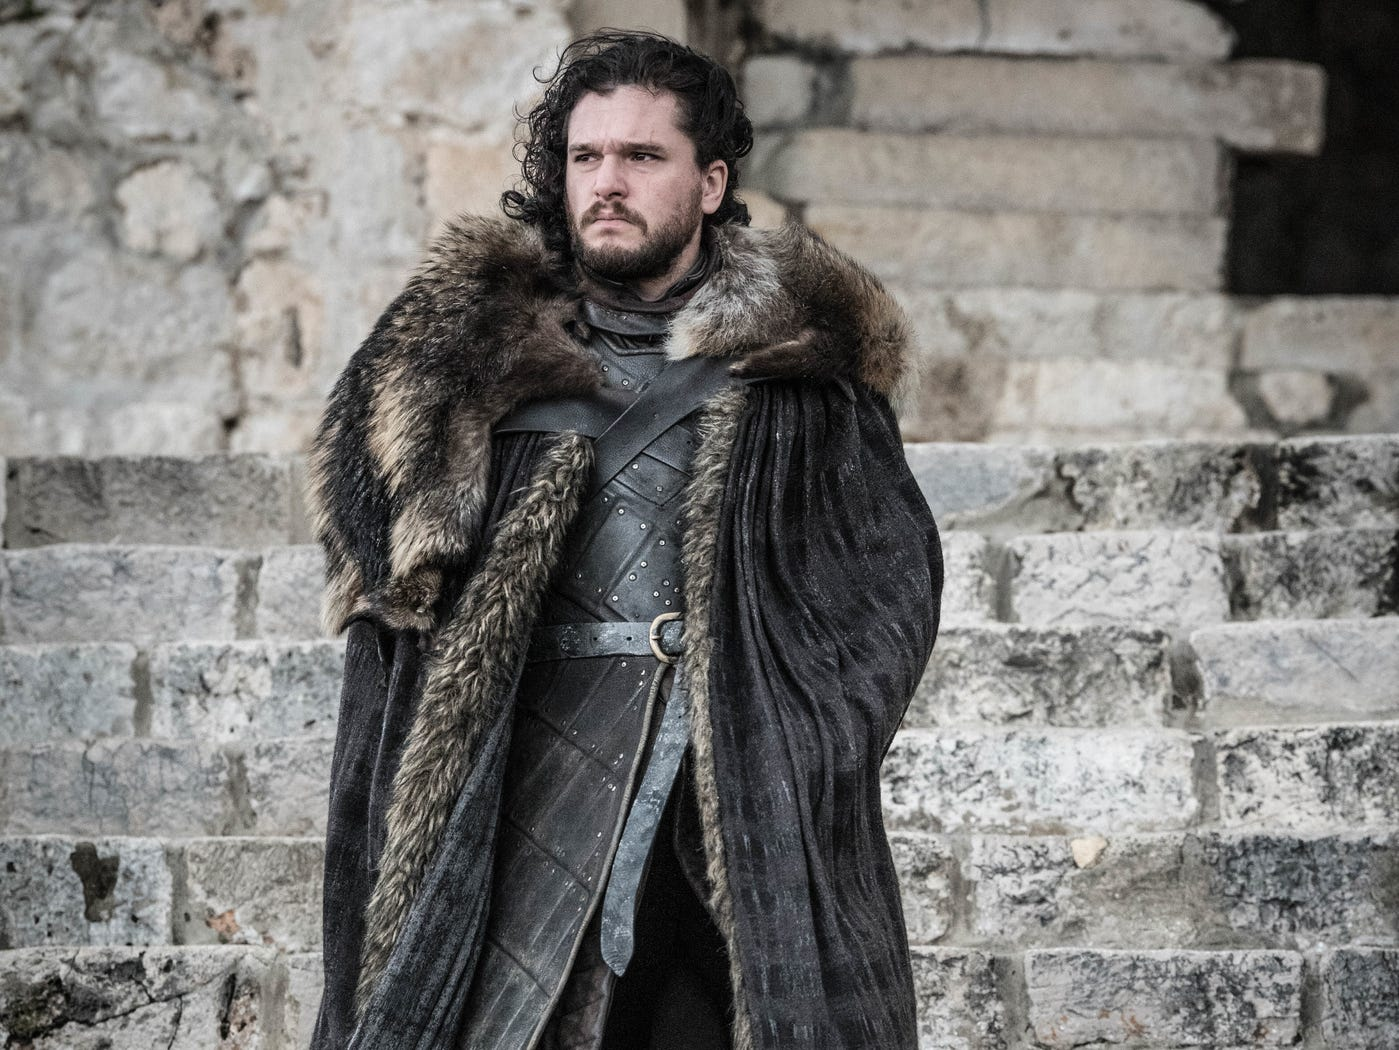 Jon Snow (Kit Harington) experiences big life changes in the series finale of 'Game of Thrones.'